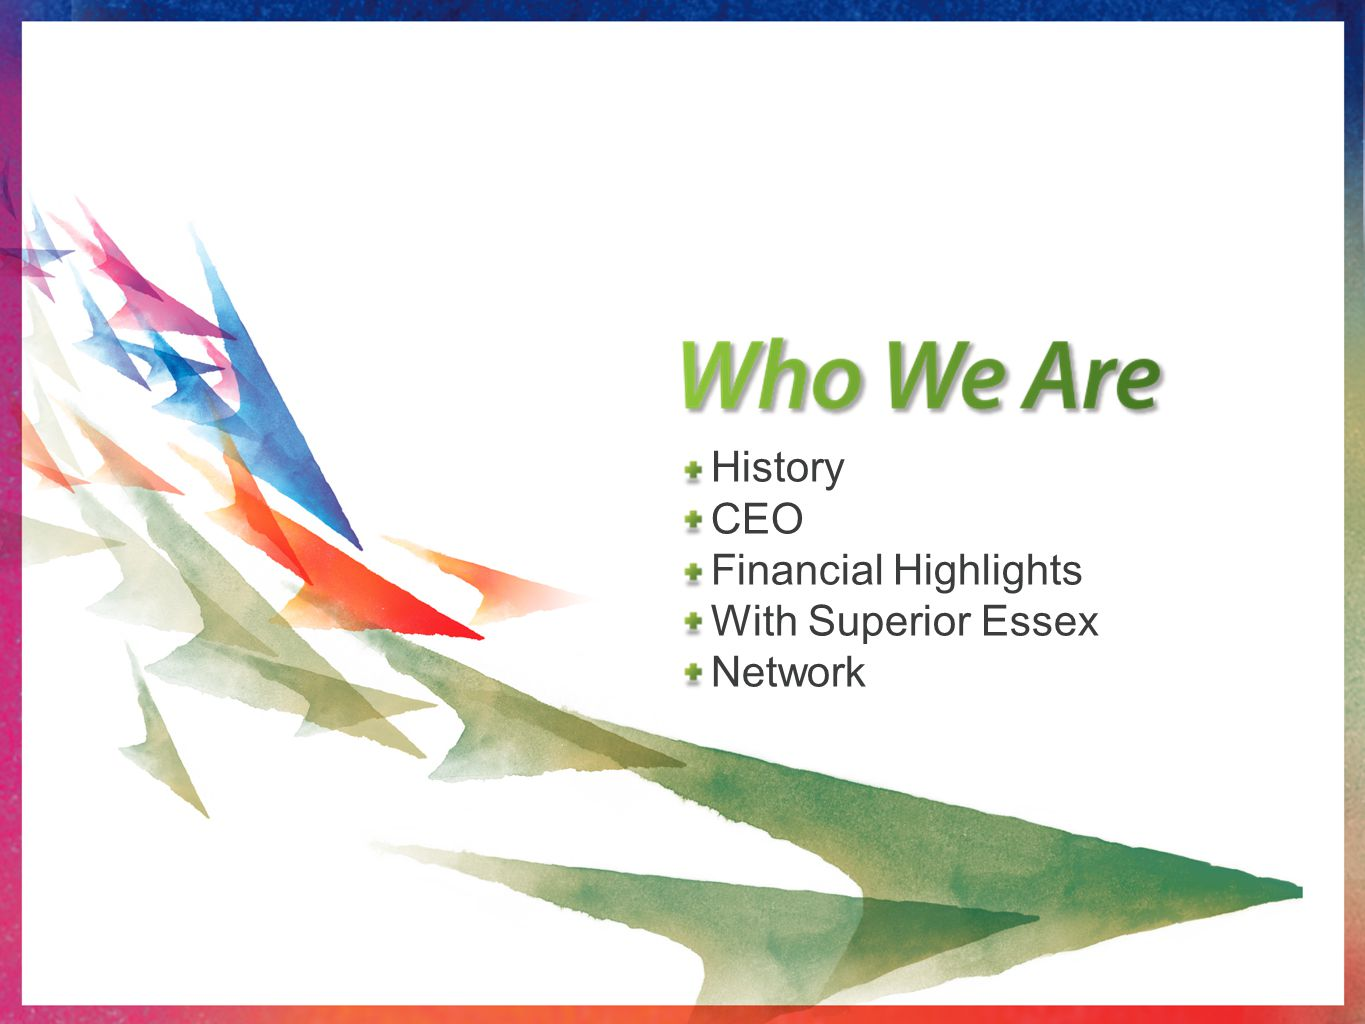 History CEO Financial Highlights With Superior Essex Network